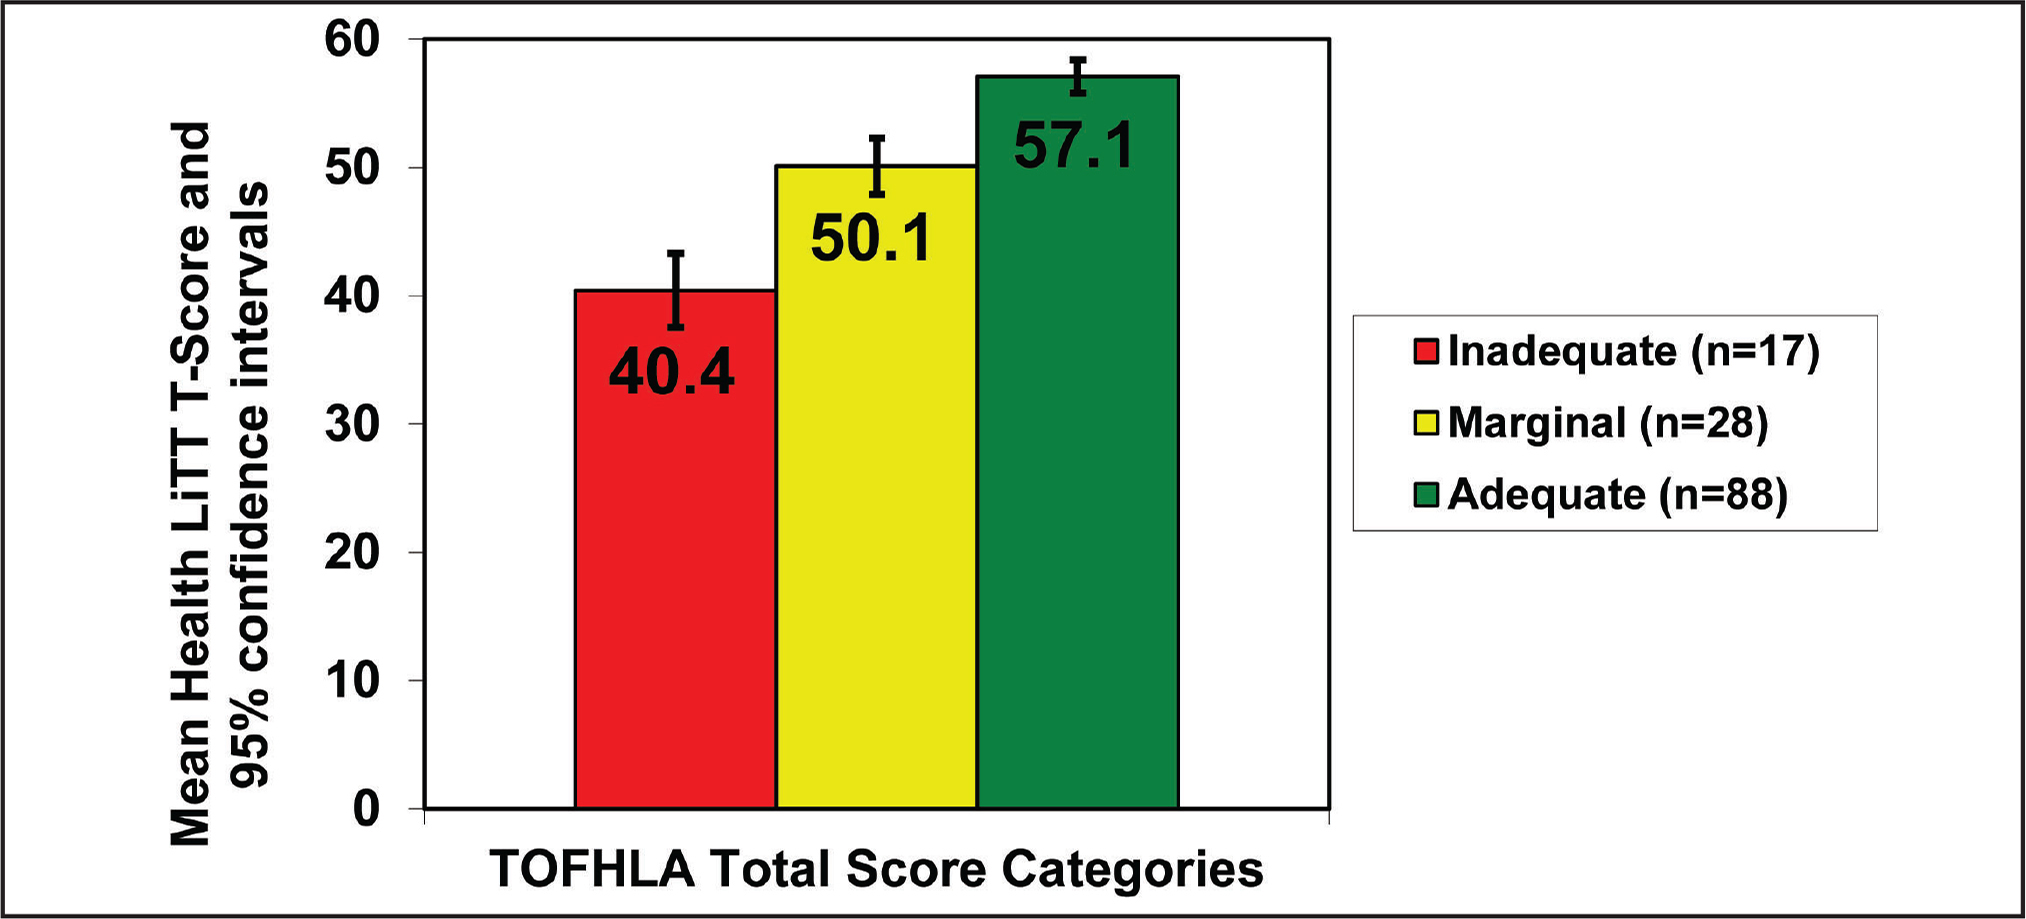 Known groups validity of a 10-item Health Literacy Assessment Using Talking Touchscreen Technology (Health LiTT) short form. Numbers within the columns indicate mean Health LiTT T-scores for those identified as having inadequate, marginal, and adequate health literacy according to the Test of Functional Health Literacy in Adults with identified confidence intervals.